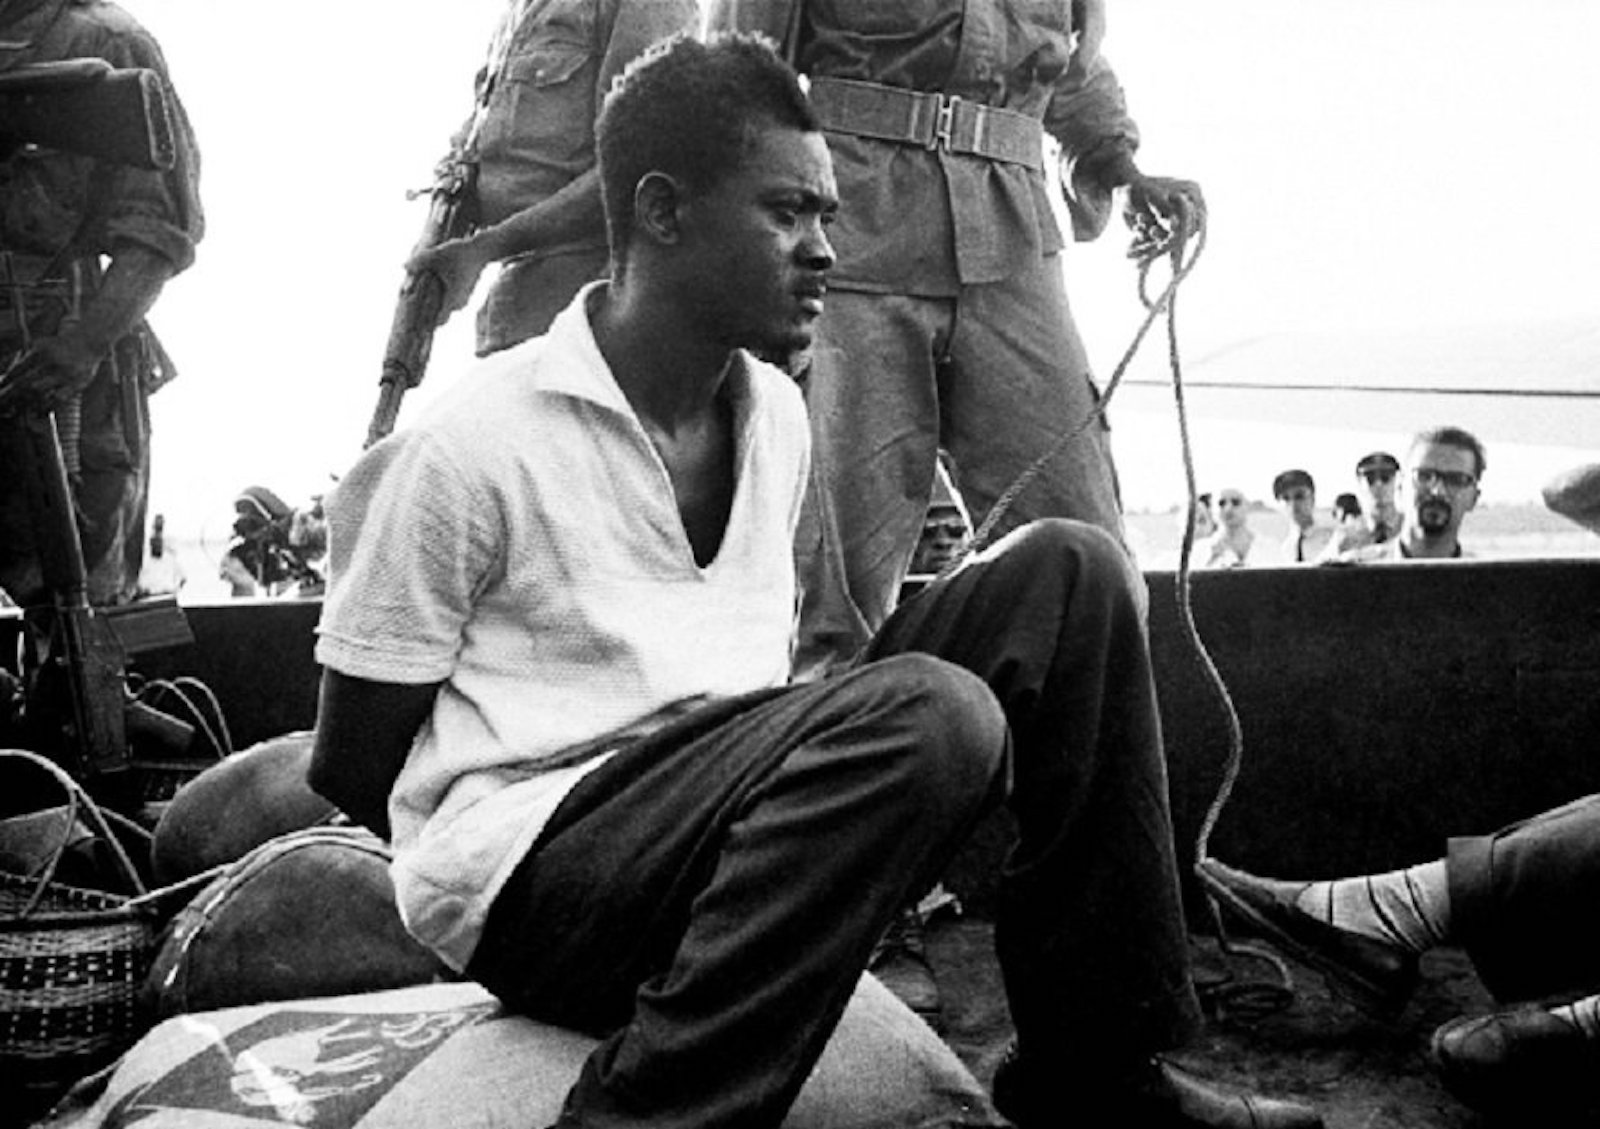 Patrice Lumumba, KOLUMN Magazine, KOLUMN, KINDR'D Magazine, KINDR'D, Willoughby Avenue, Wriit,